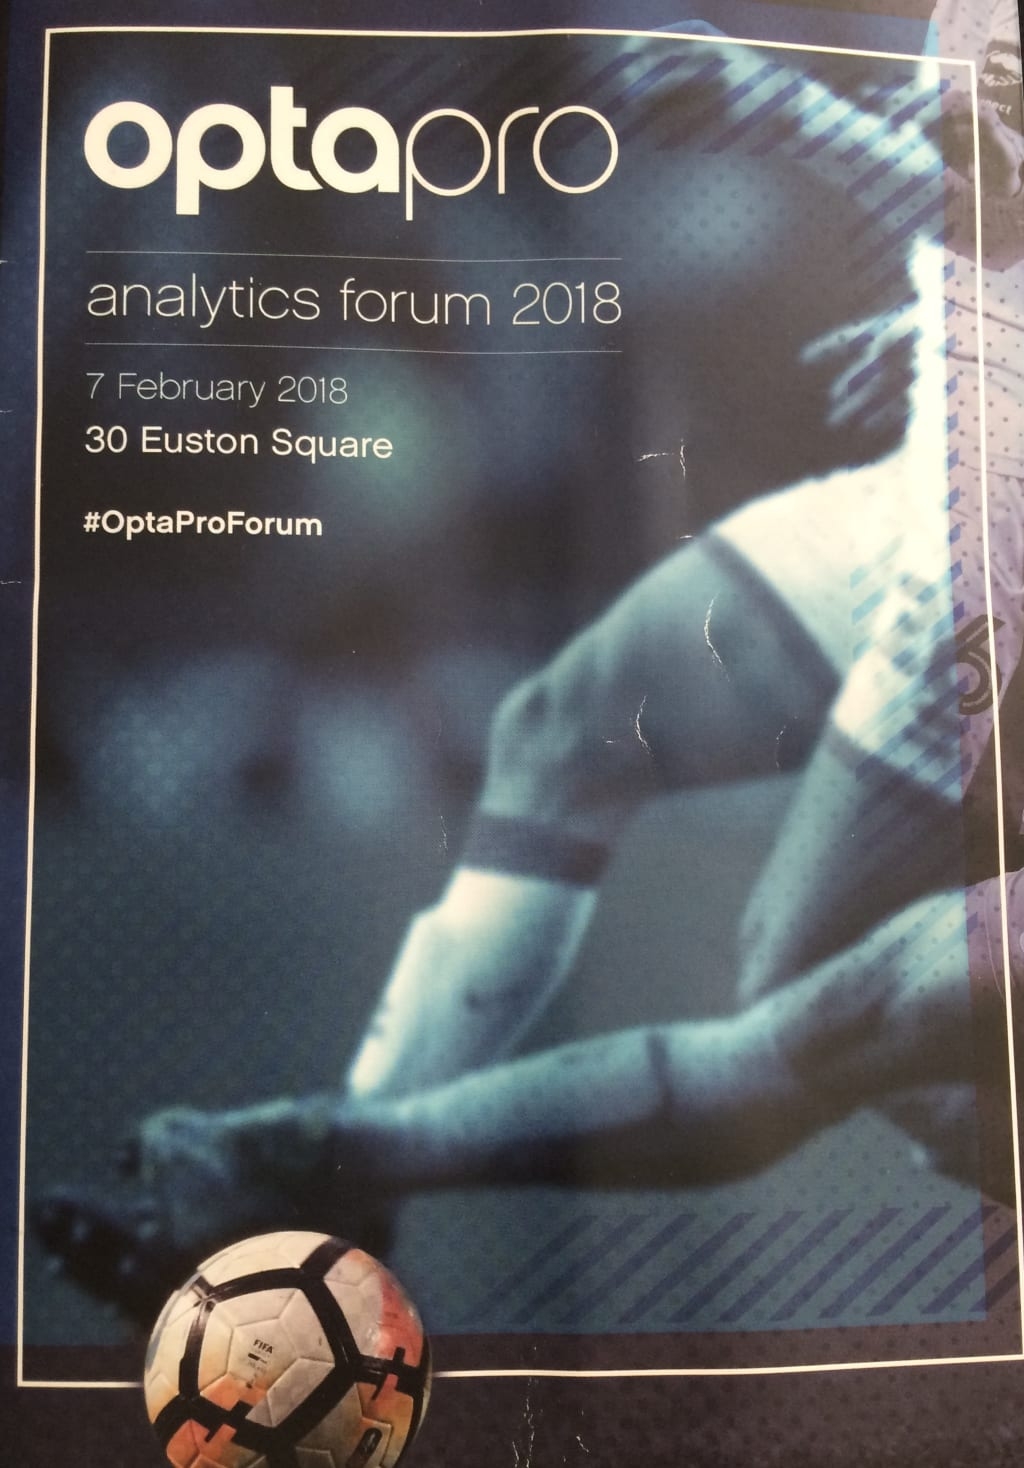 A Day at the OptaPro Forum